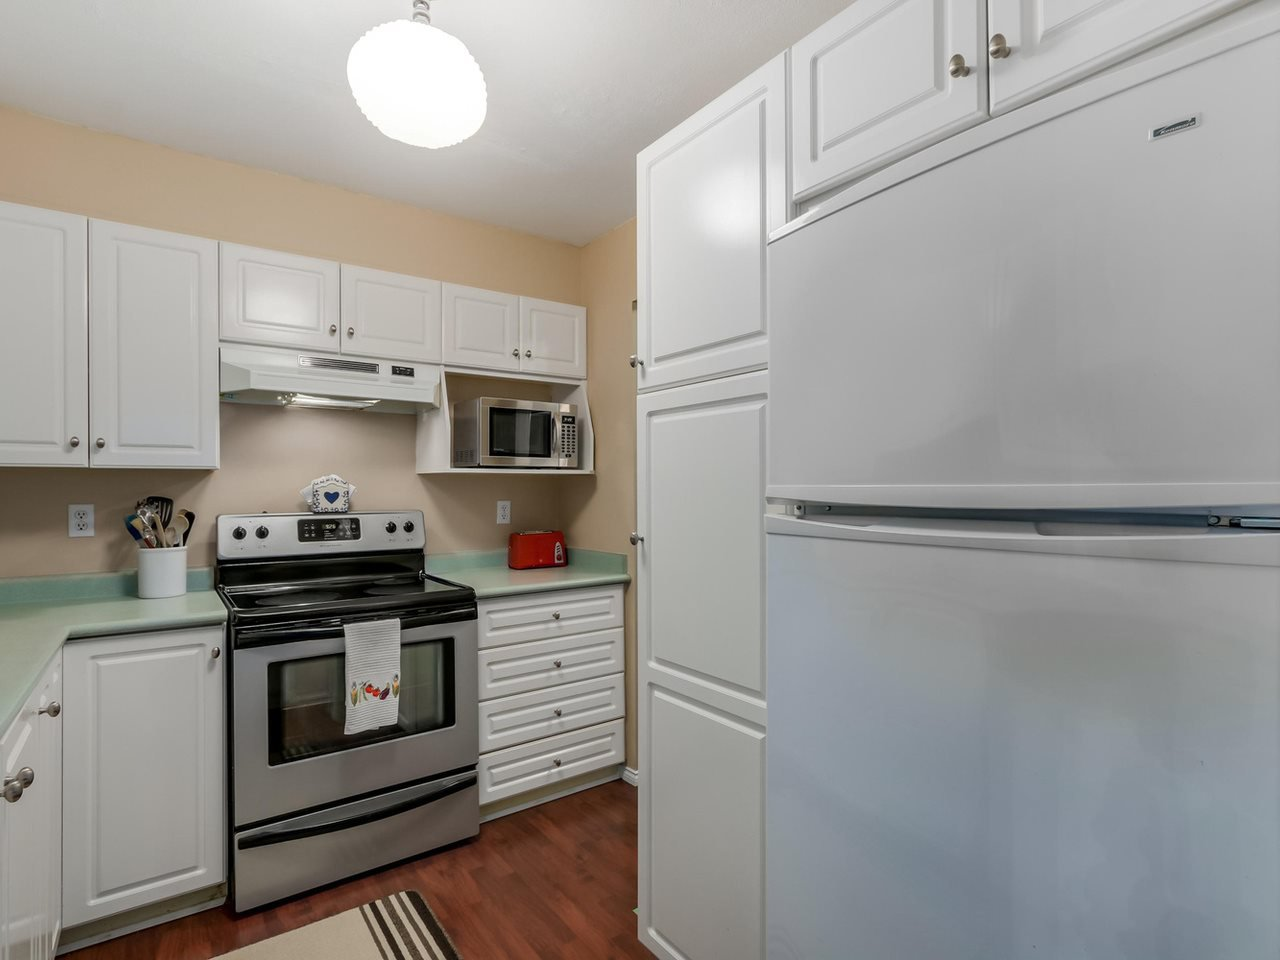 Photo 7: Photos: 107 515 WHITING Way in Coquitlam: Coquitlam West Condo for sale : MLS®# R2073119